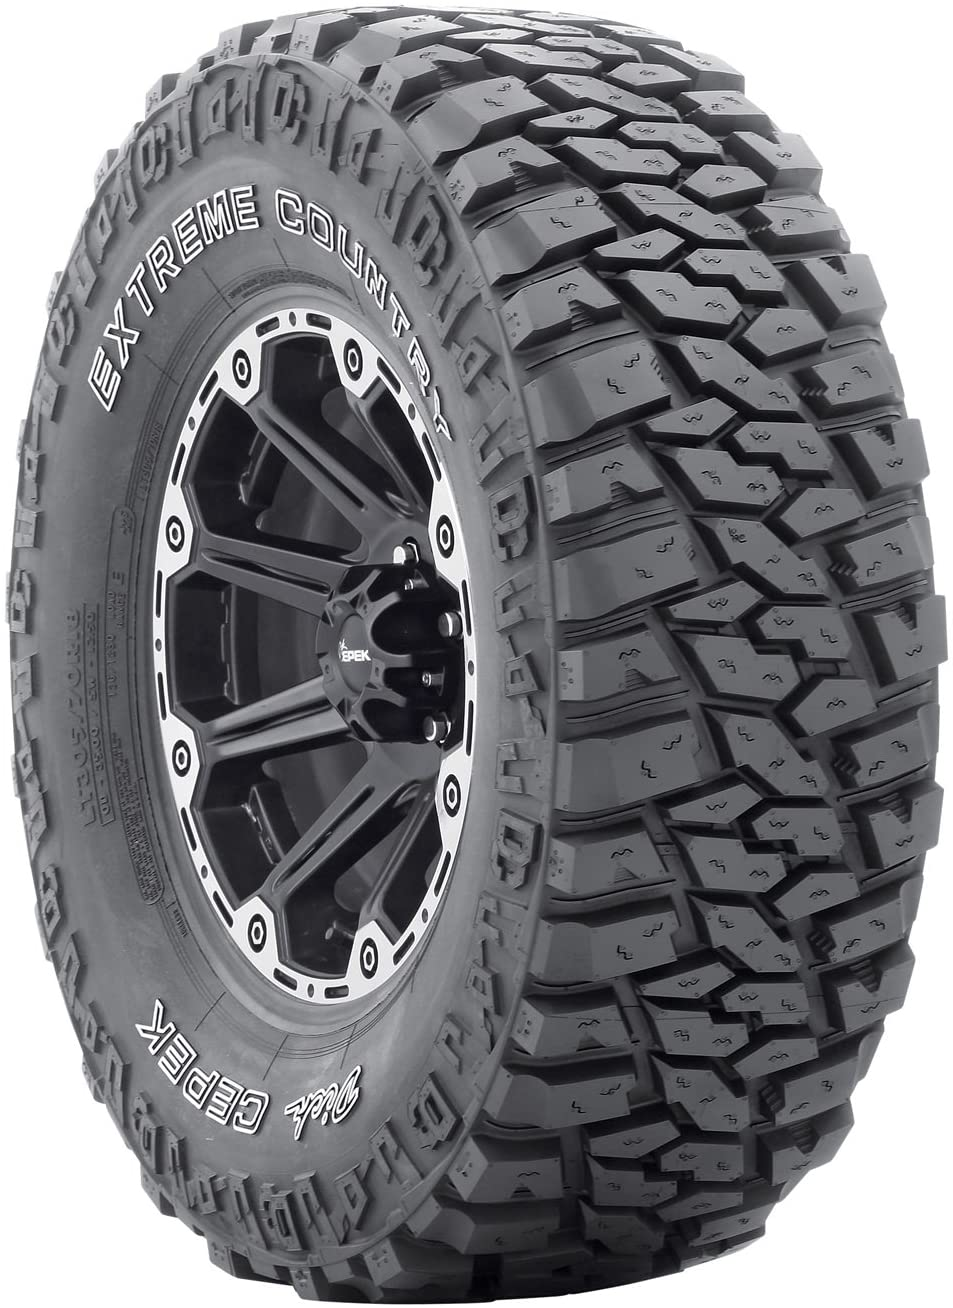 Dick Cepek Extreme Country All-Terrain Radial Tire - LT315/70R17 121Q